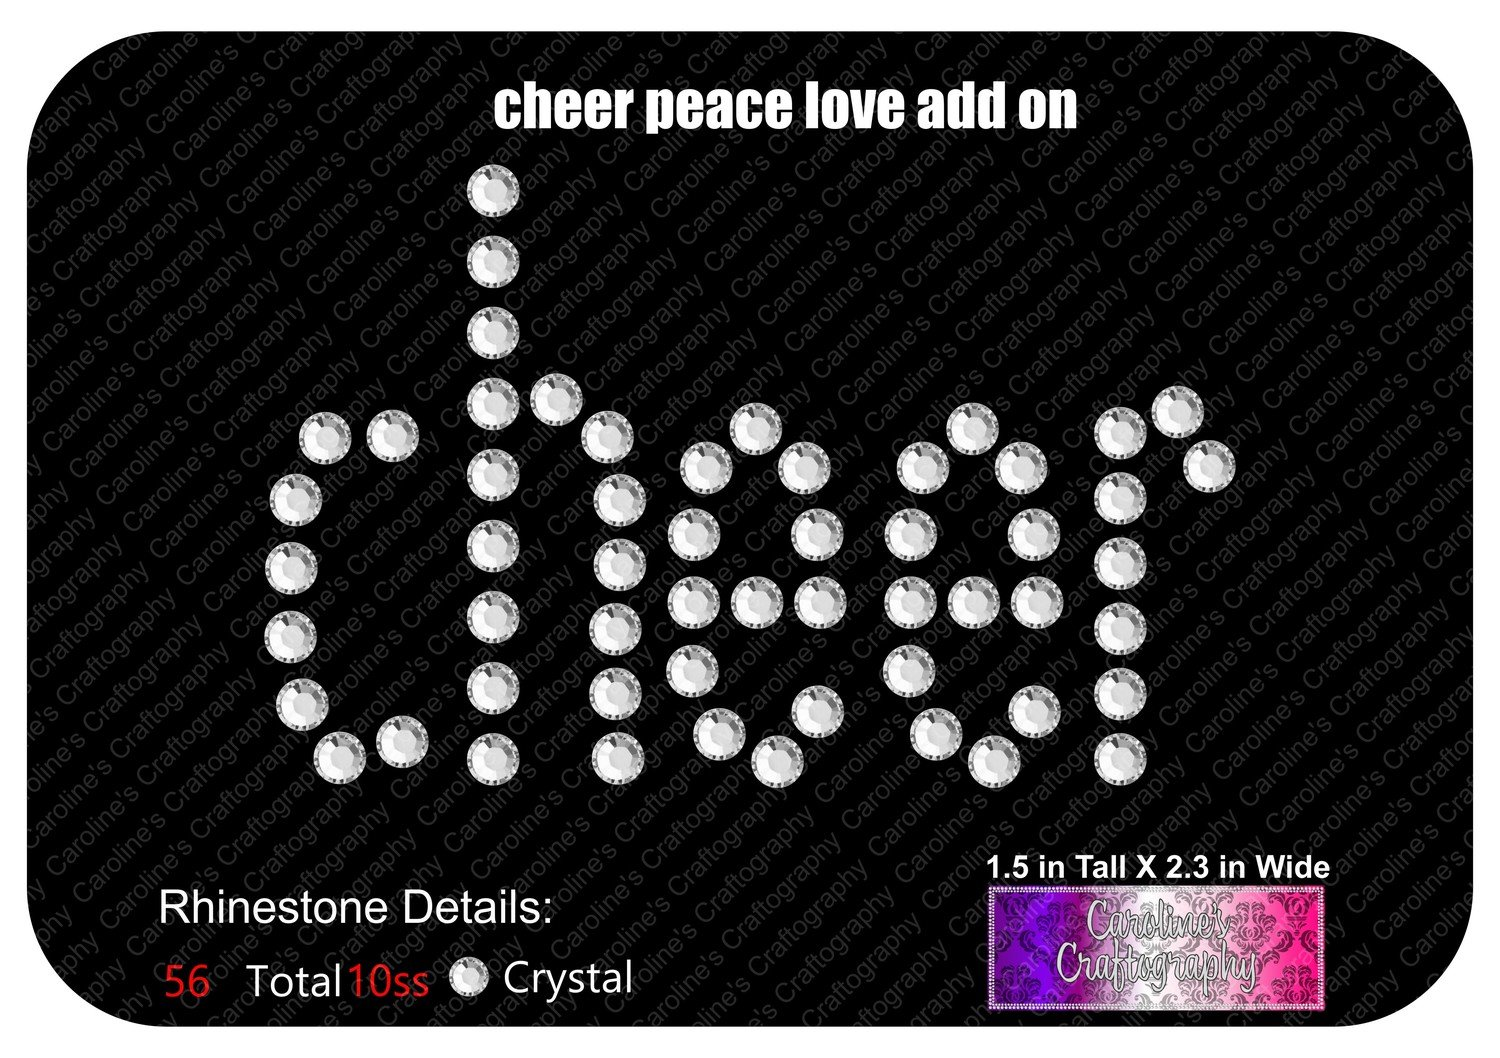 Cheer Add-on for Peace Love Bows Design